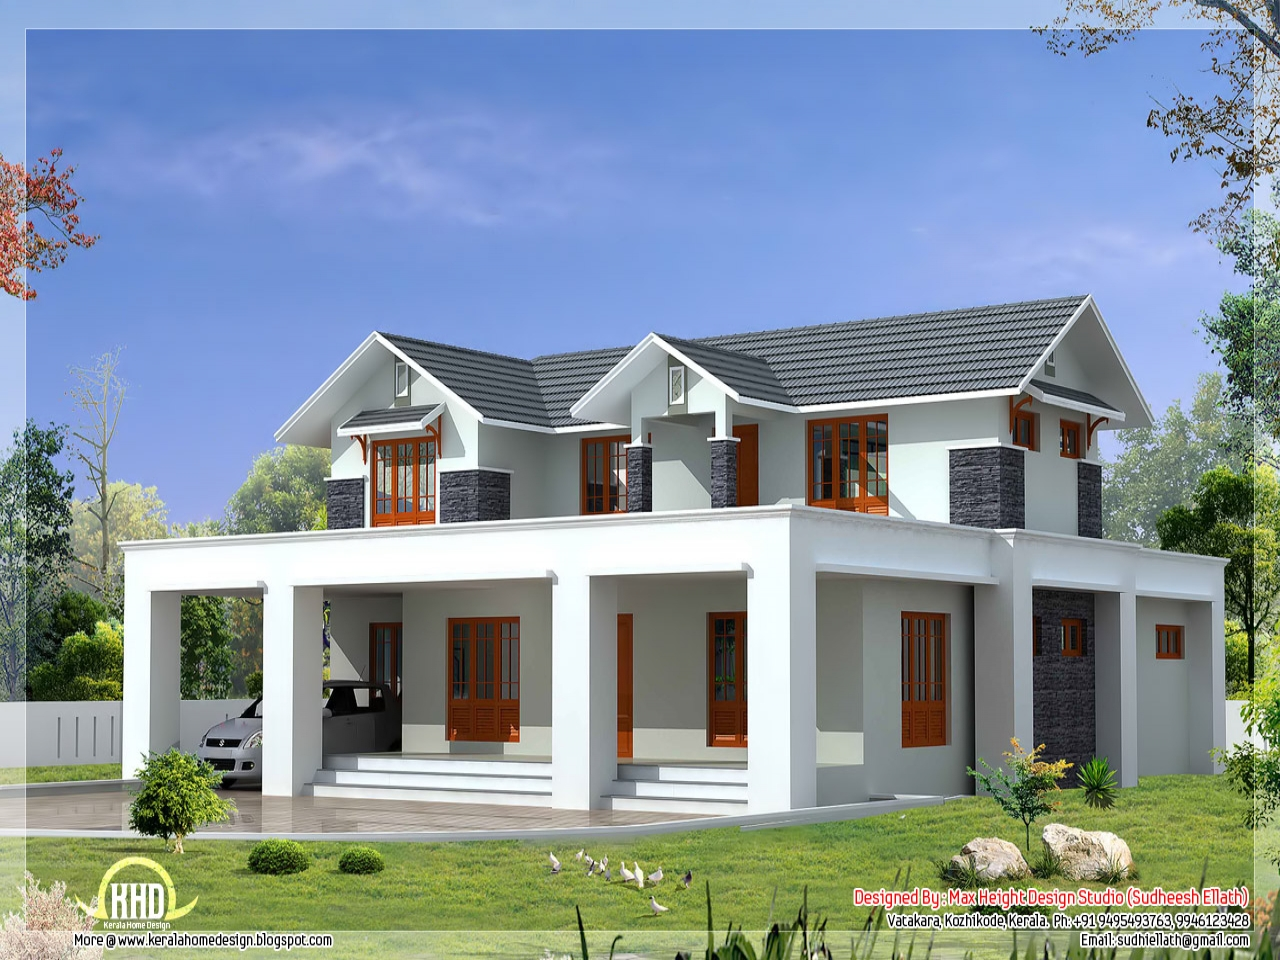 Flat roof house plans designs shed roof house plans flat for One story shed roof house plans